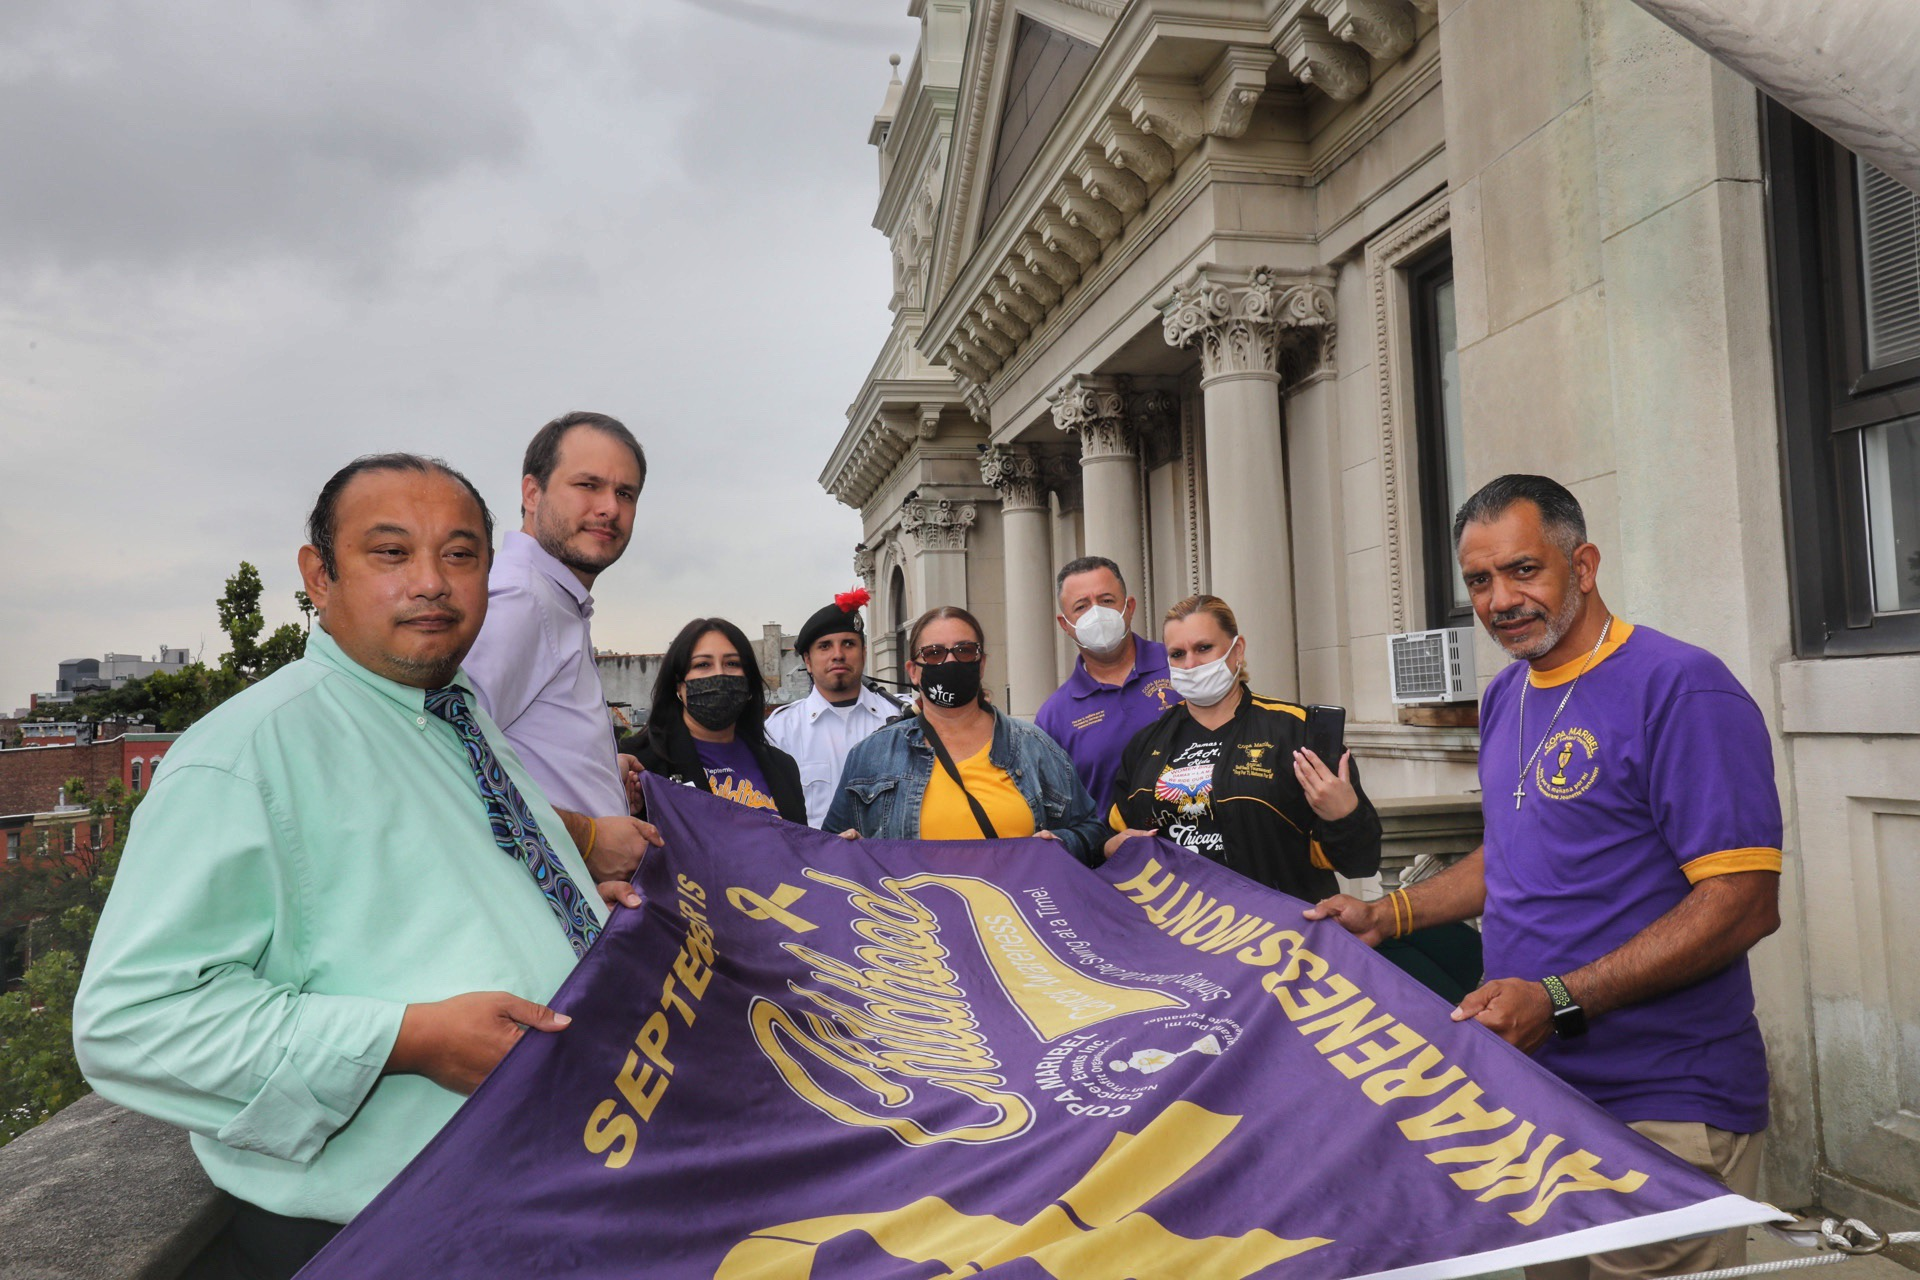 A group holds the flag before it is raised . It is deep purple with a gold ribbon.The international awareness symbol for Childhood Cancer is the gold ribbon. Unlike other cancer awareness ribbons, which focus on a singular type of cancer, the gold ribbon is a symbol for all forms of cancer affecting children and adolescents.